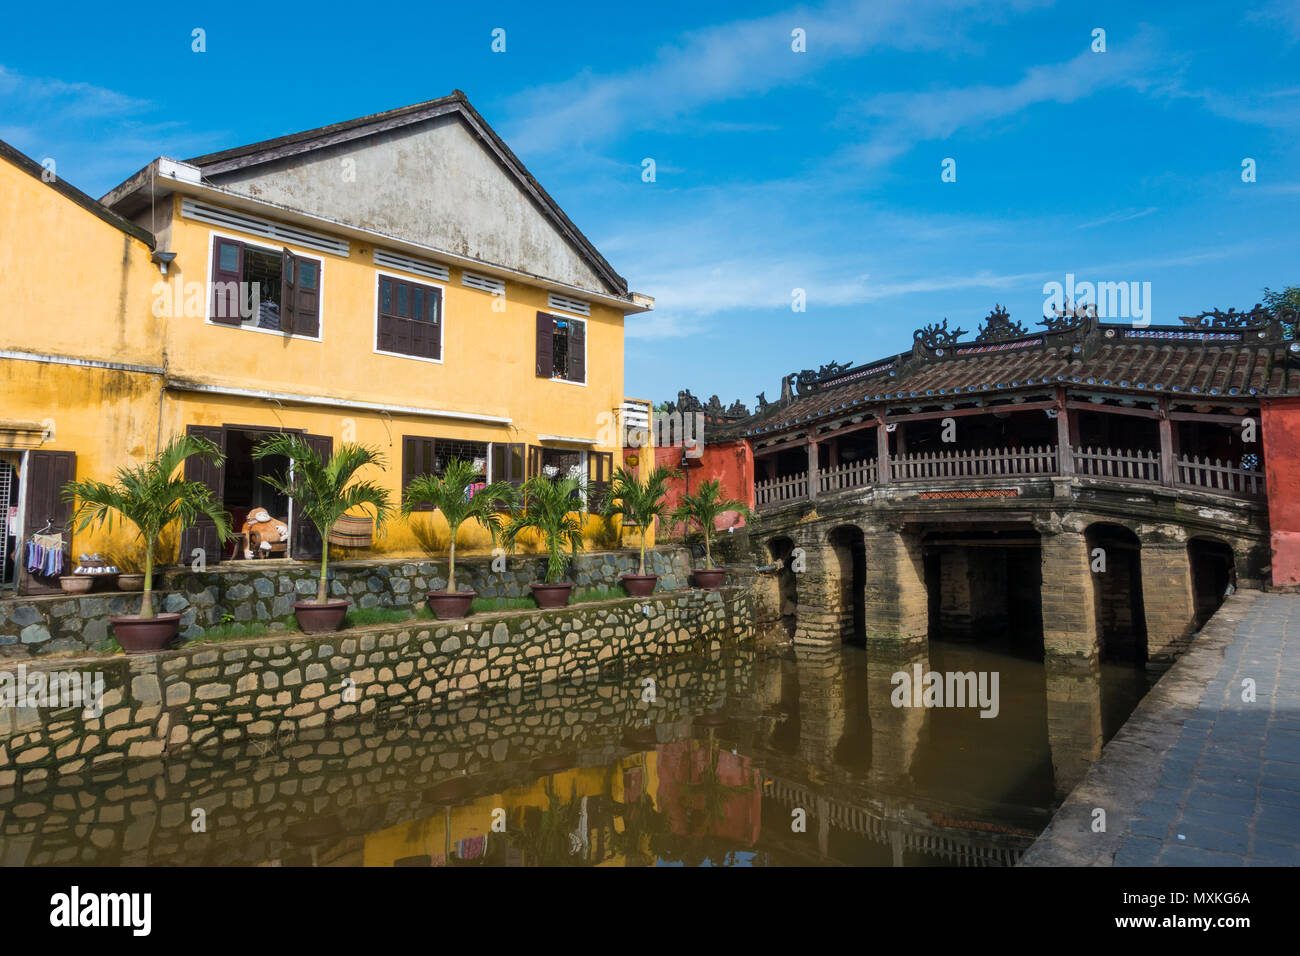 Chua Cau (the Pagoda Bridge) or The Japanese Covered Bridge in Hoi An is one of the famous tourist attractions in Hoi An, Vietnam - Stock Image